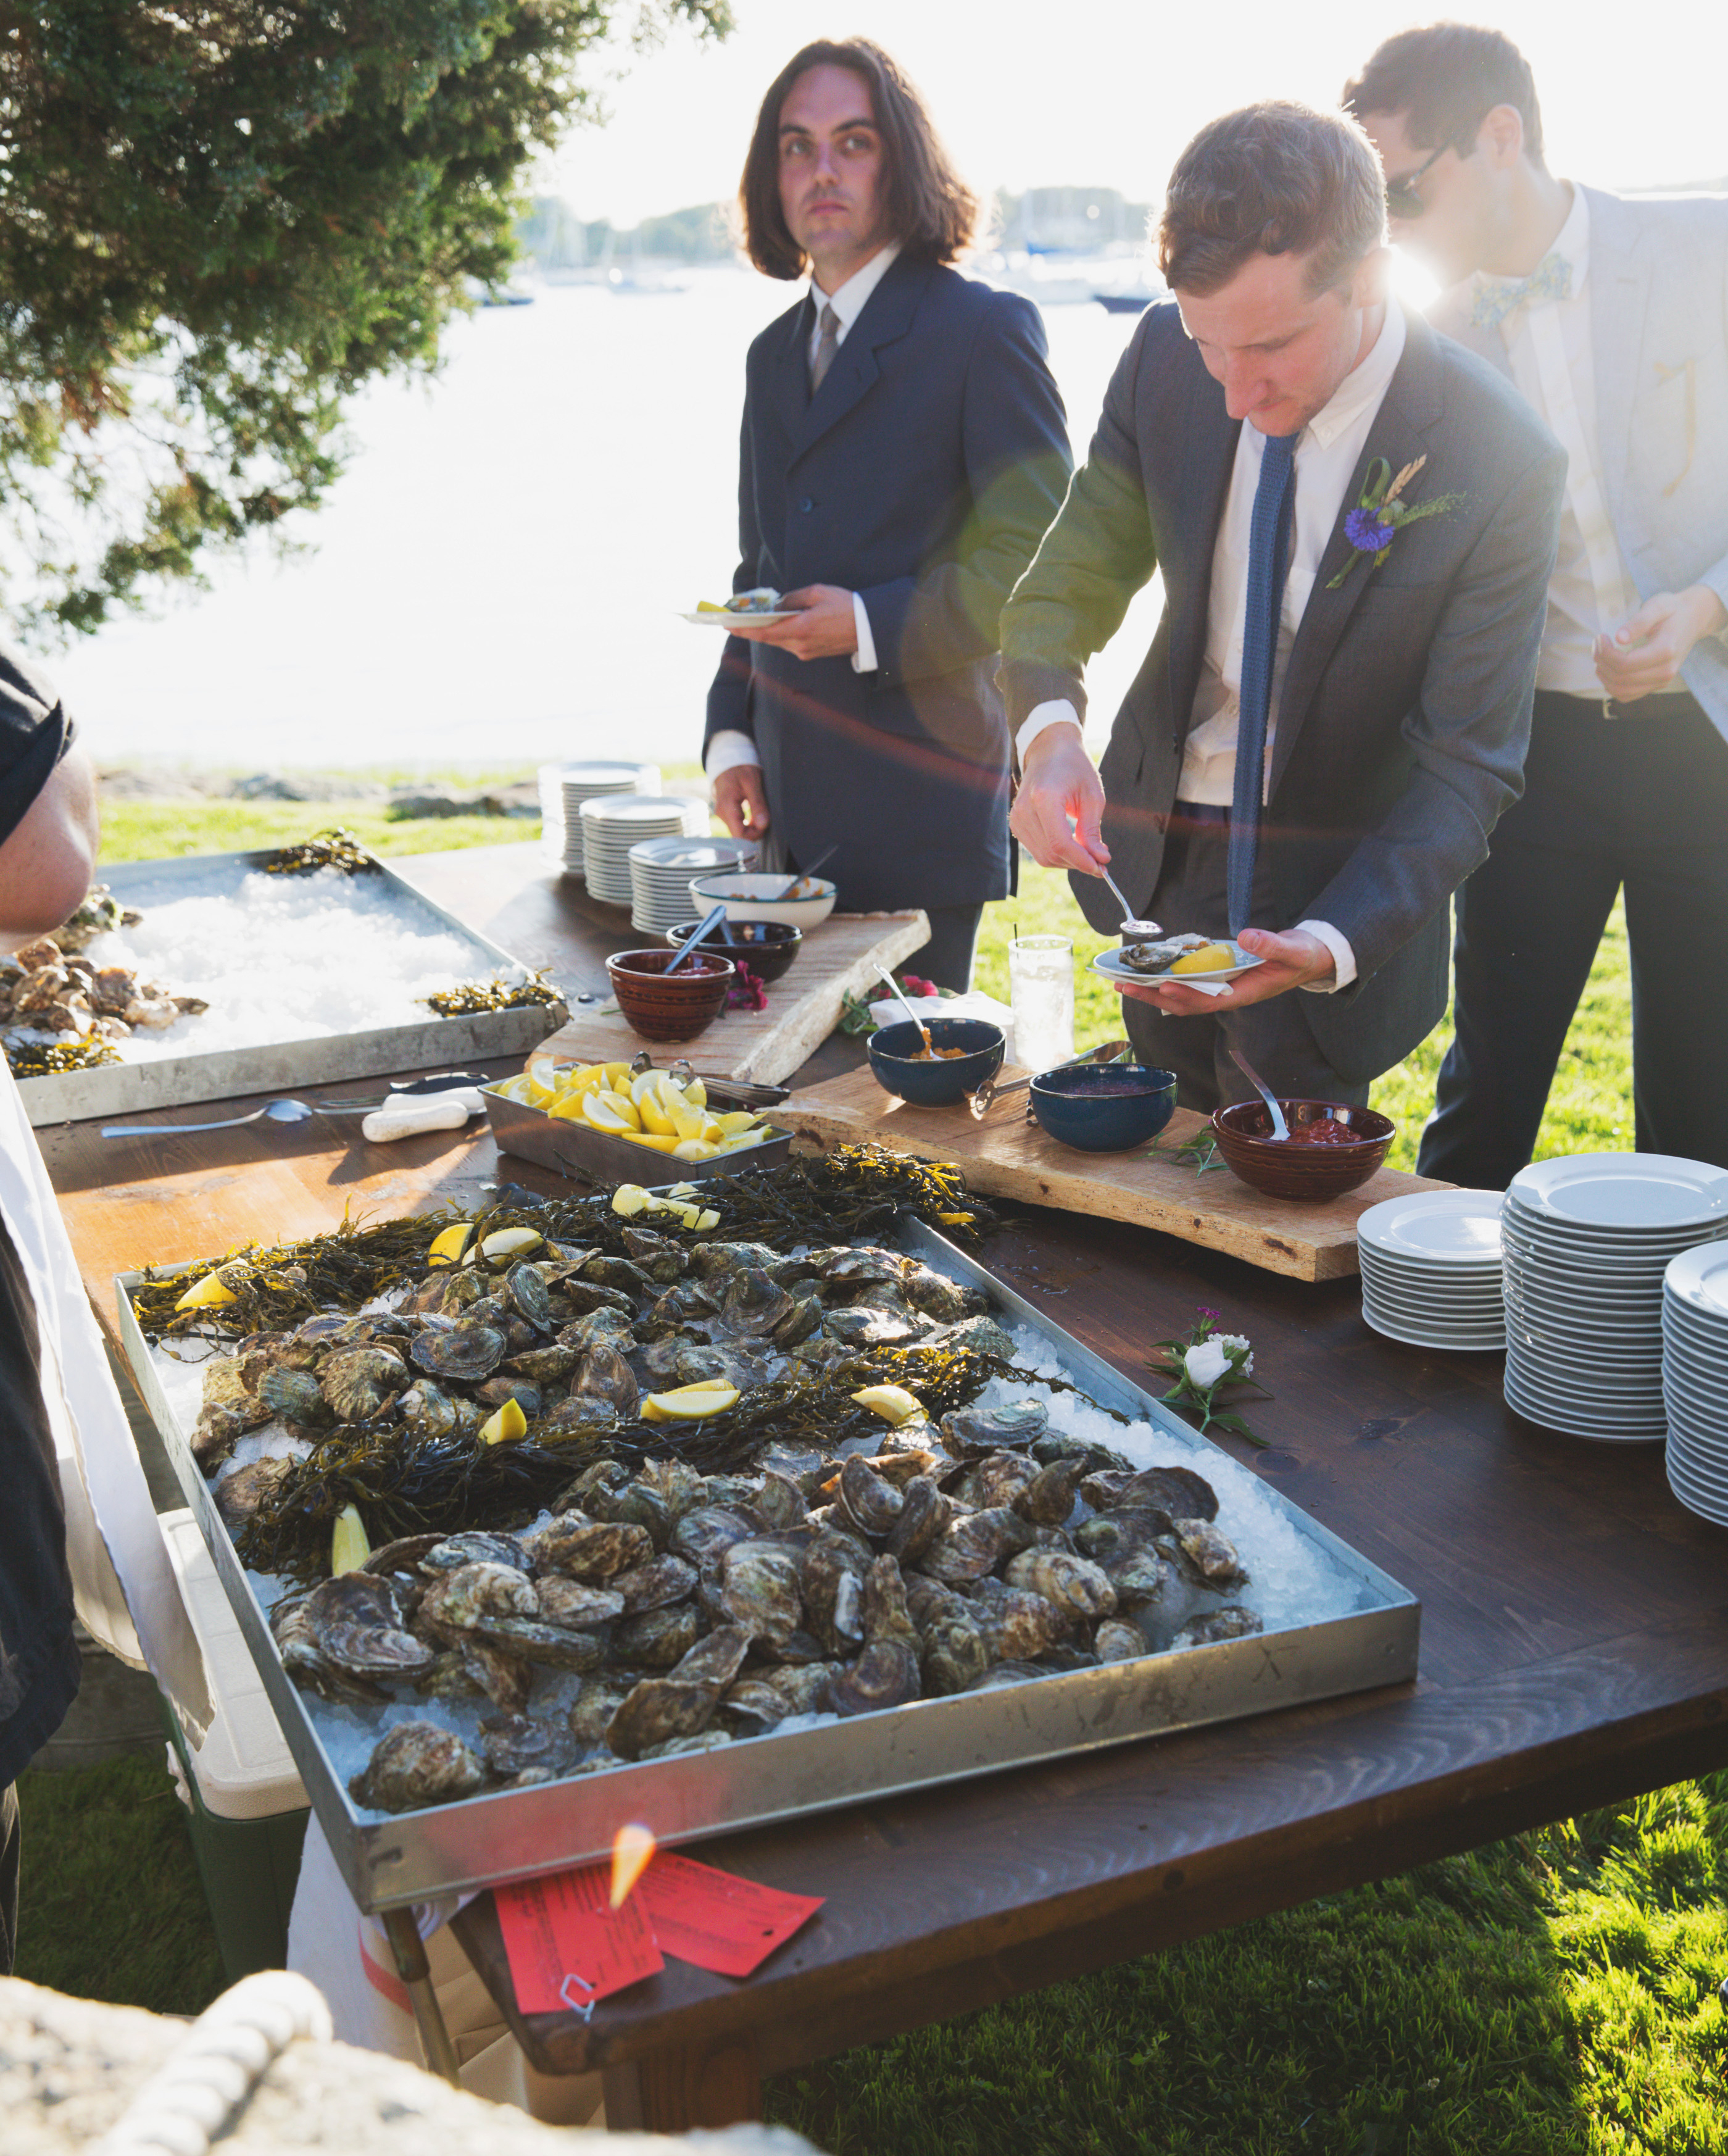 lilly-carter-wedding-oysters-00467-s112037-0715.jpg